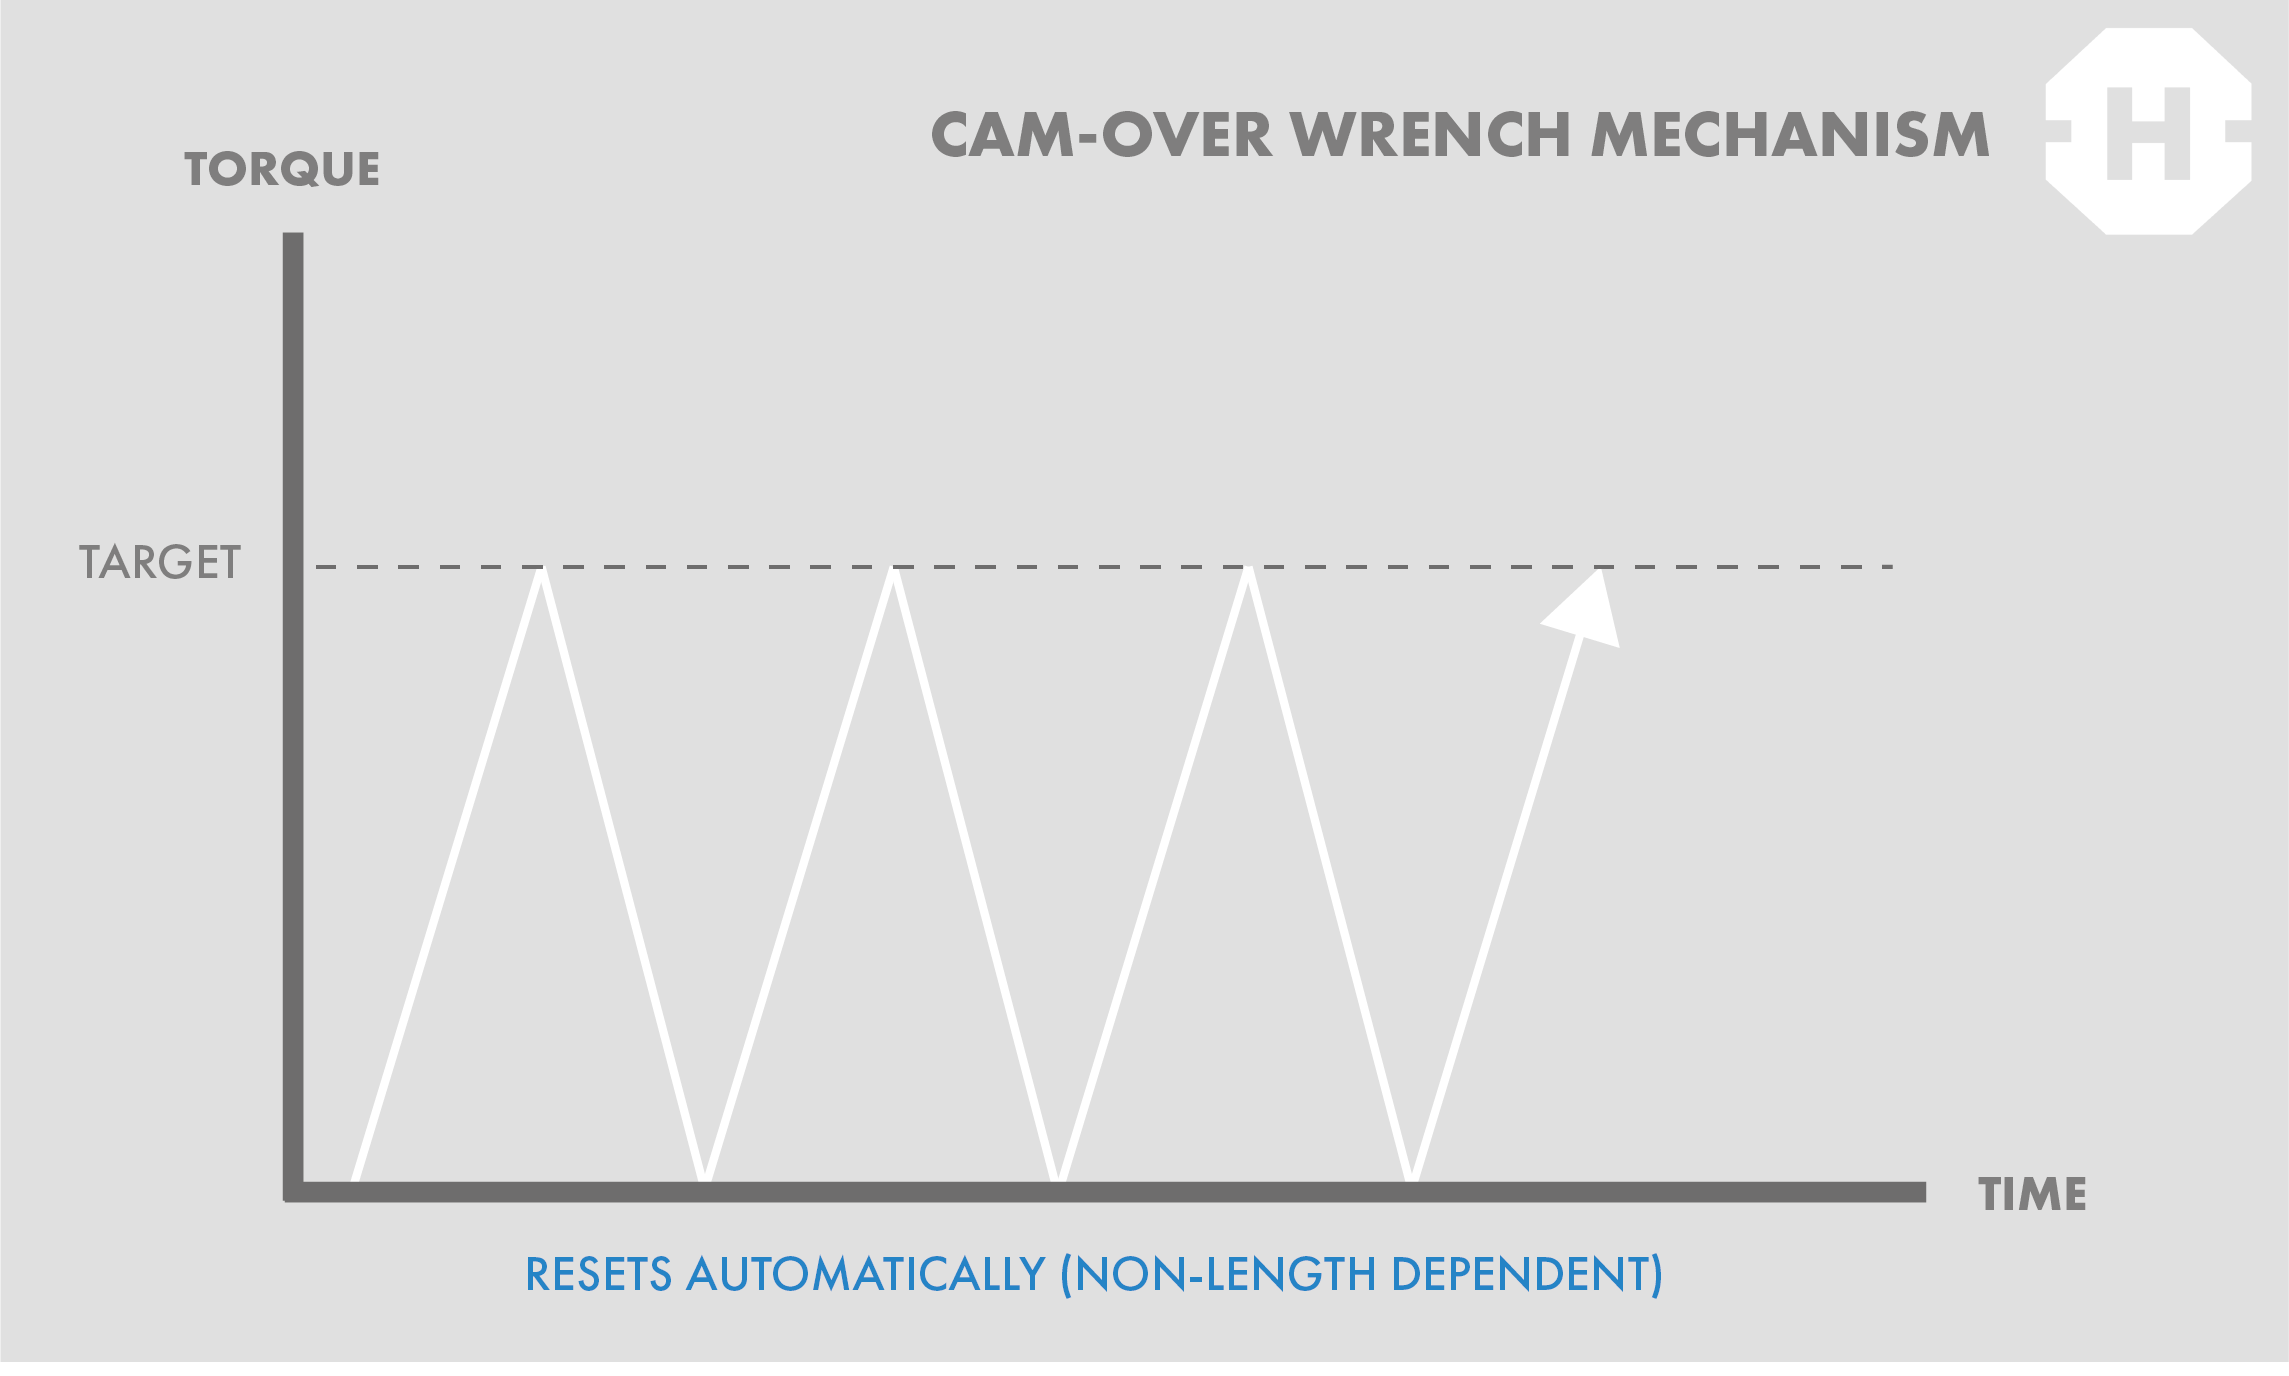 cam-over mechanism